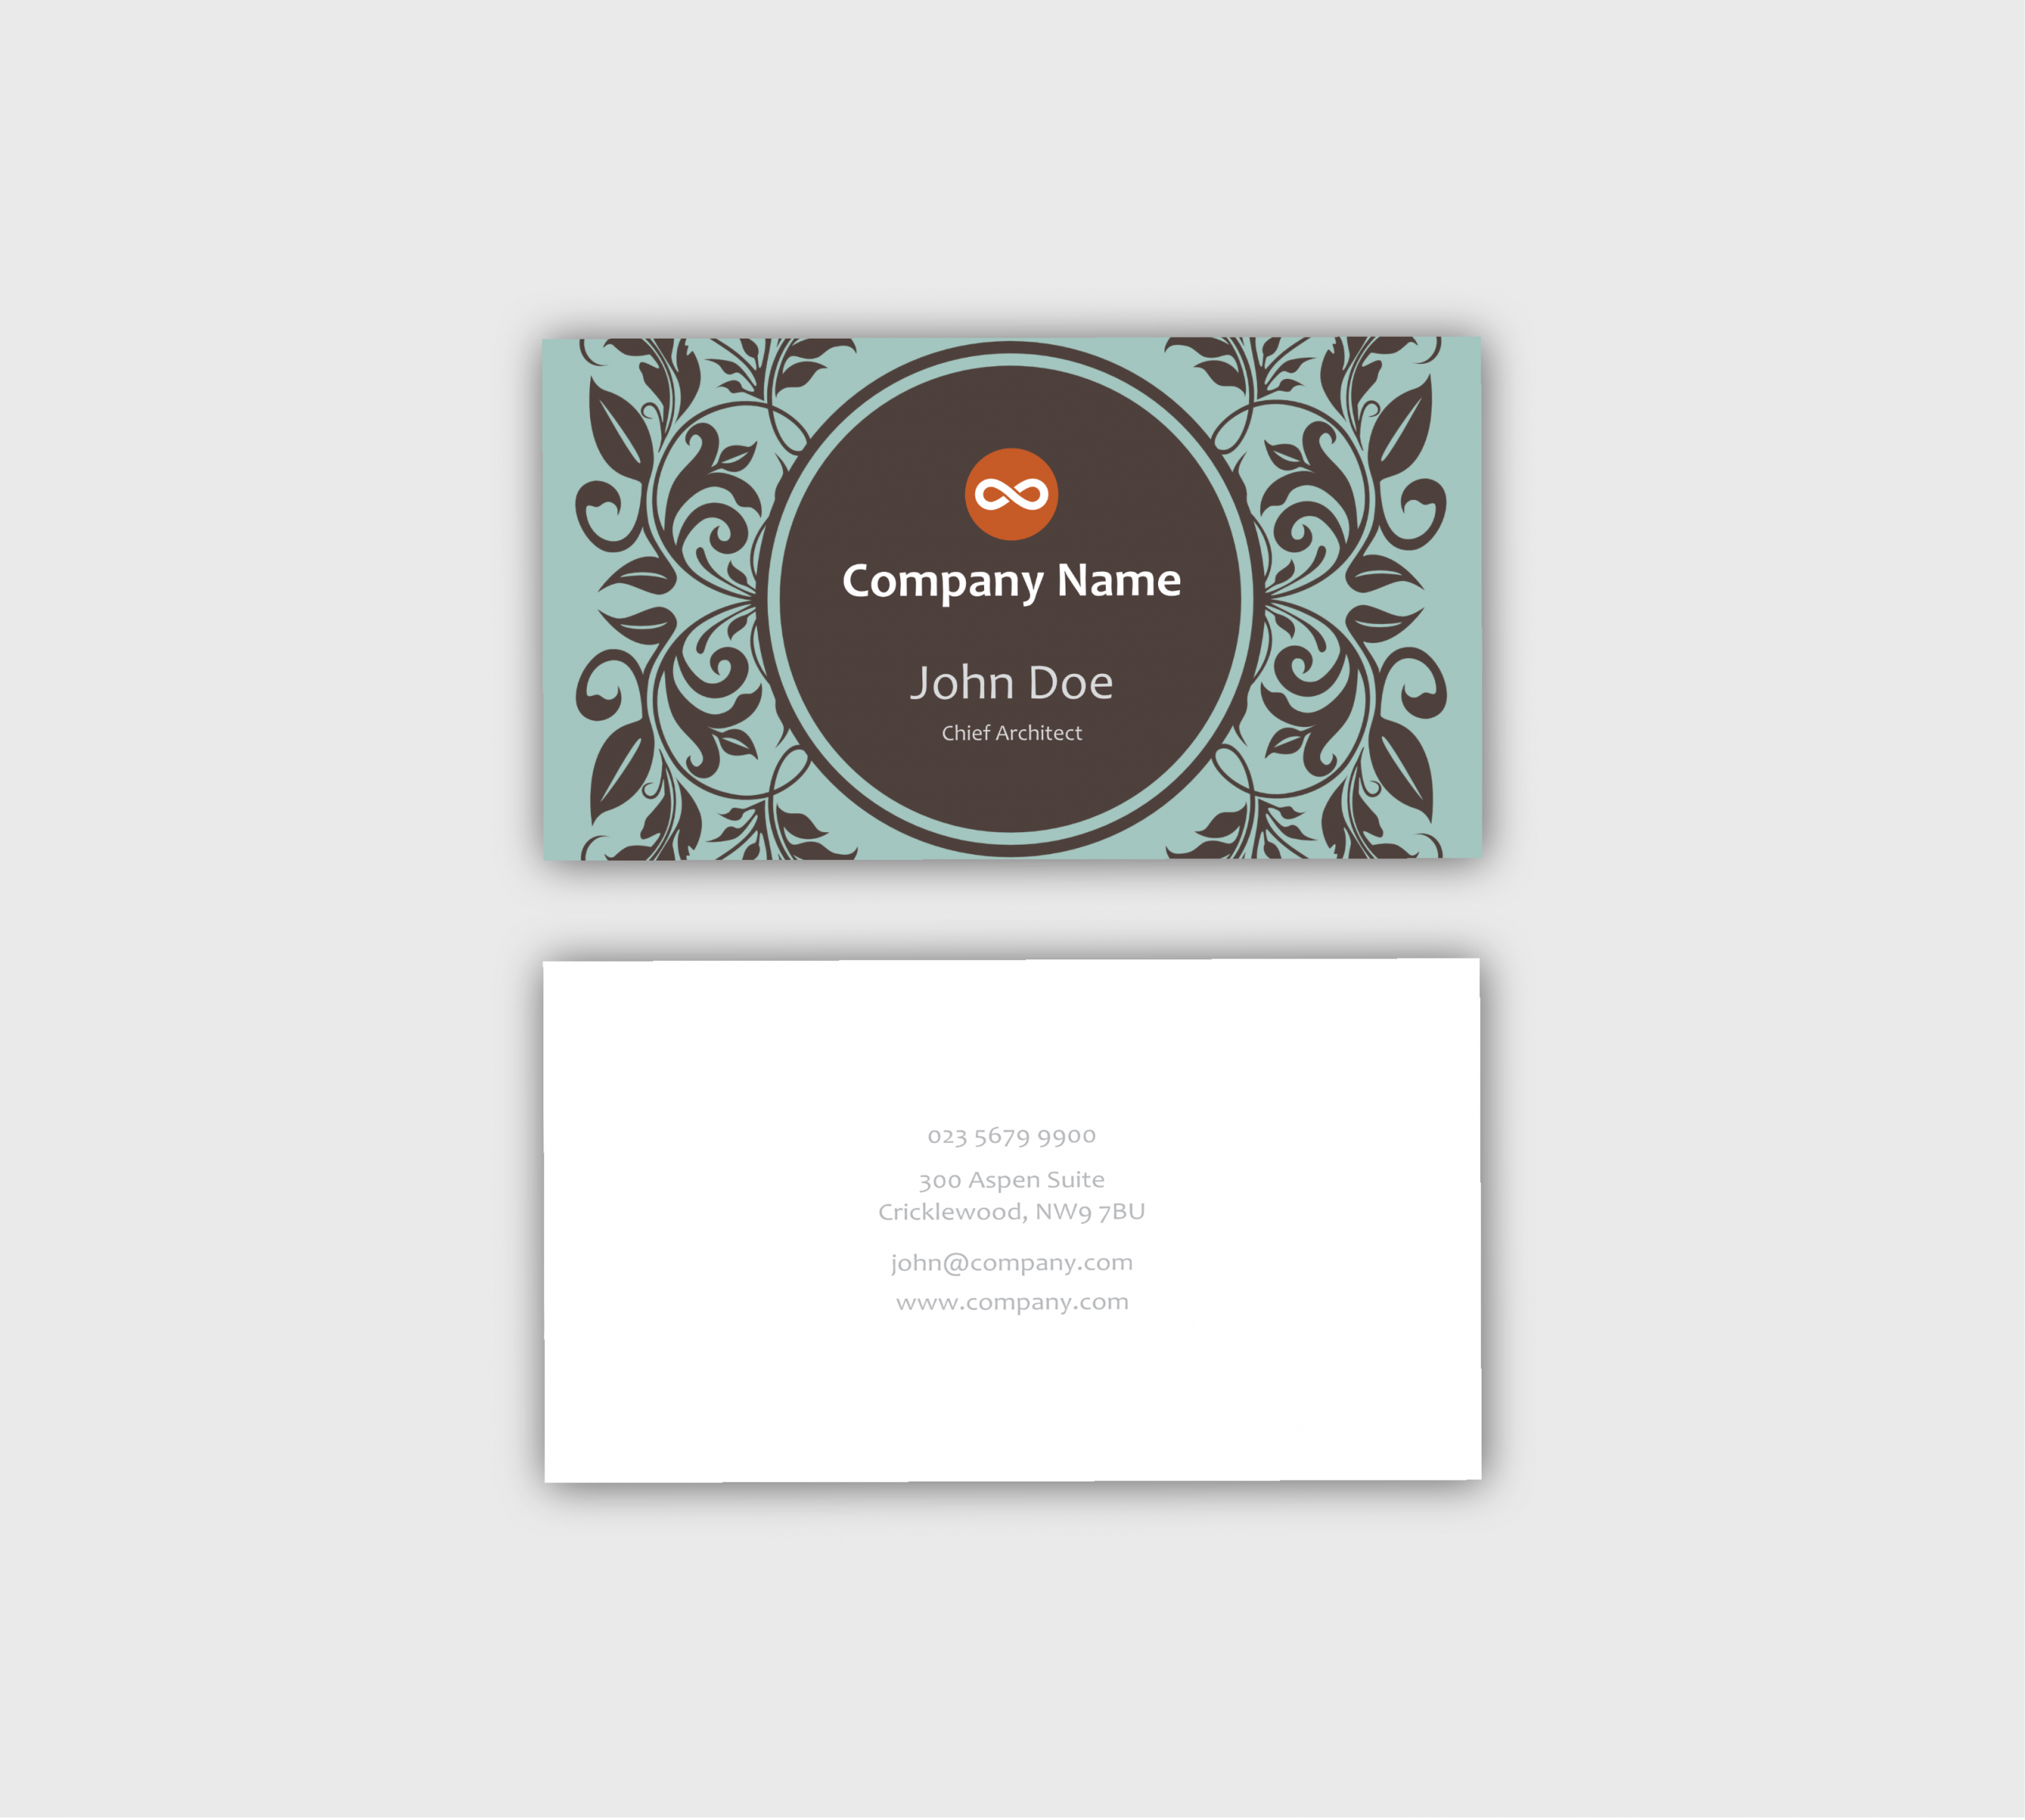 Best value business cards cleverprint ottawa click to enlarge previous product best value business cards reheart Gallery